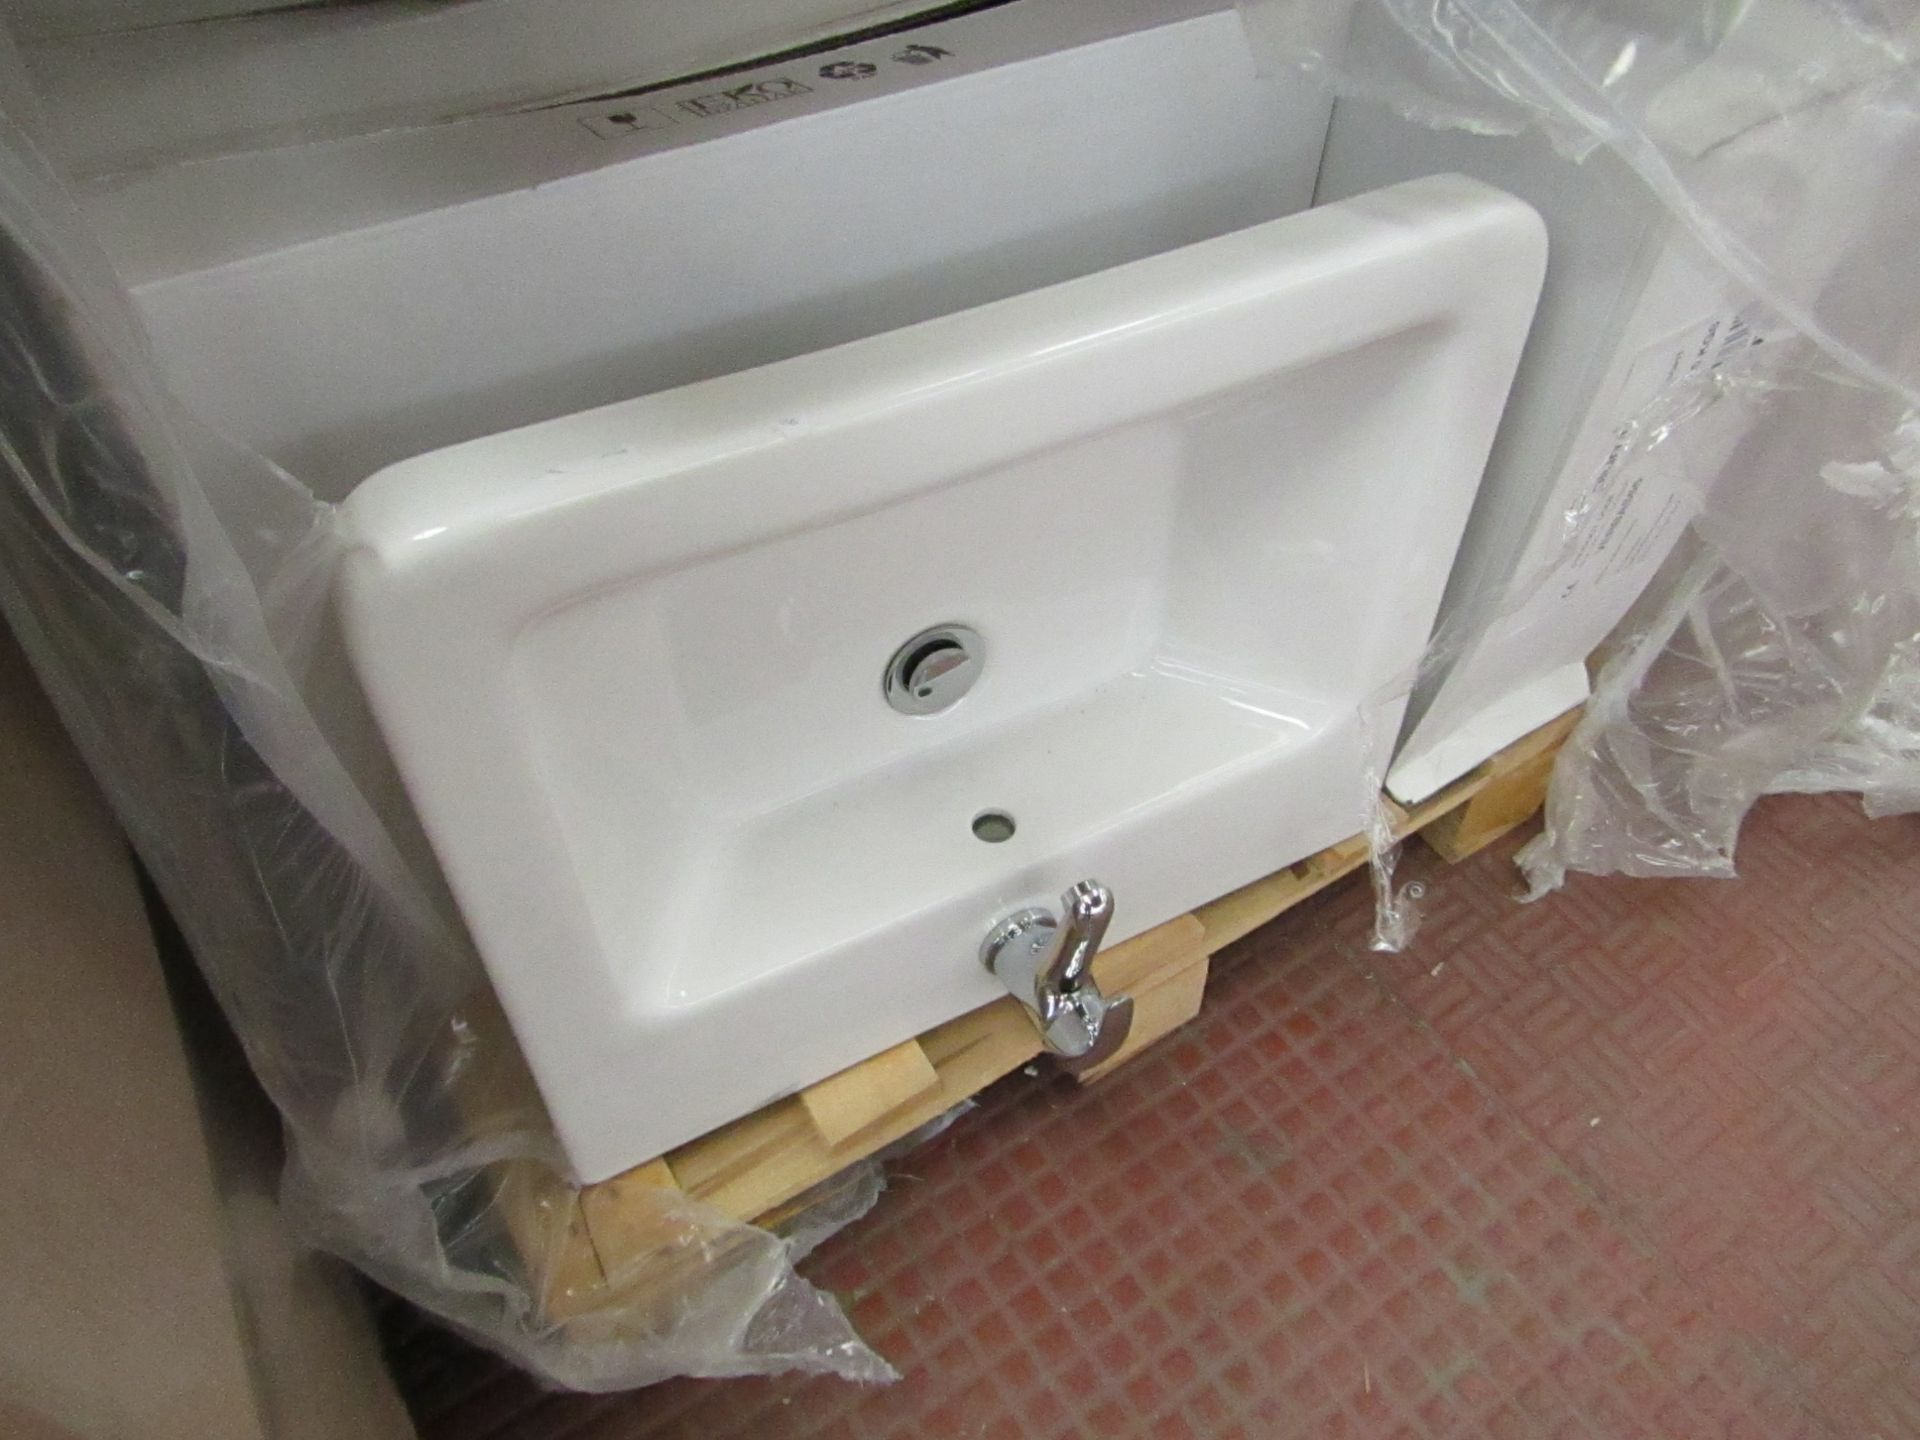 Lotto 11 - Victoria Plum Verso 550mm sink with mono block mixer tap, new and Boxed